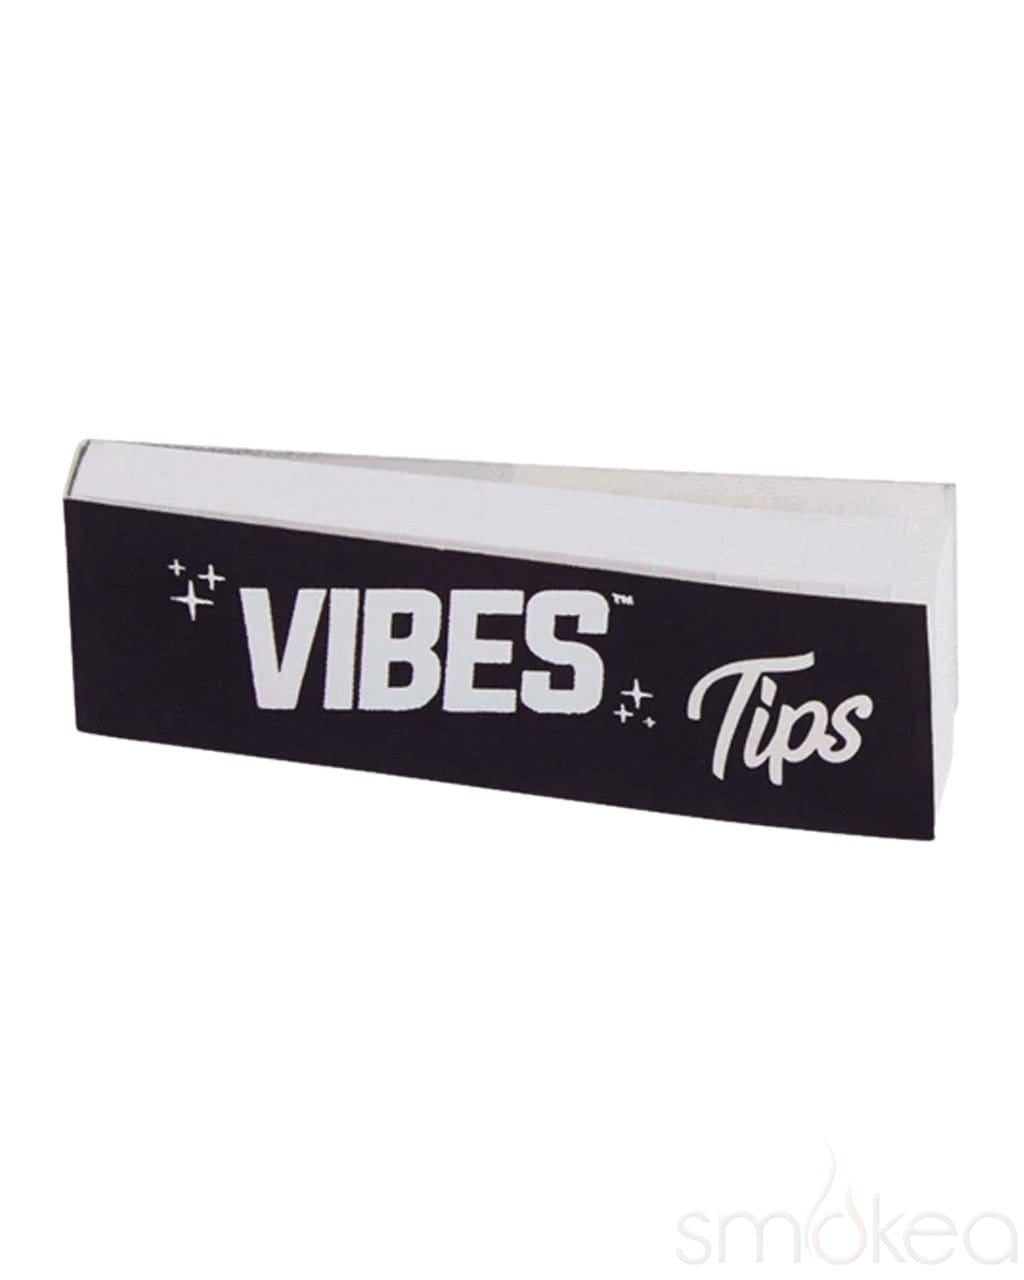 Vibes 1 1/4 Rolling Paper Tips - SMOKEA®